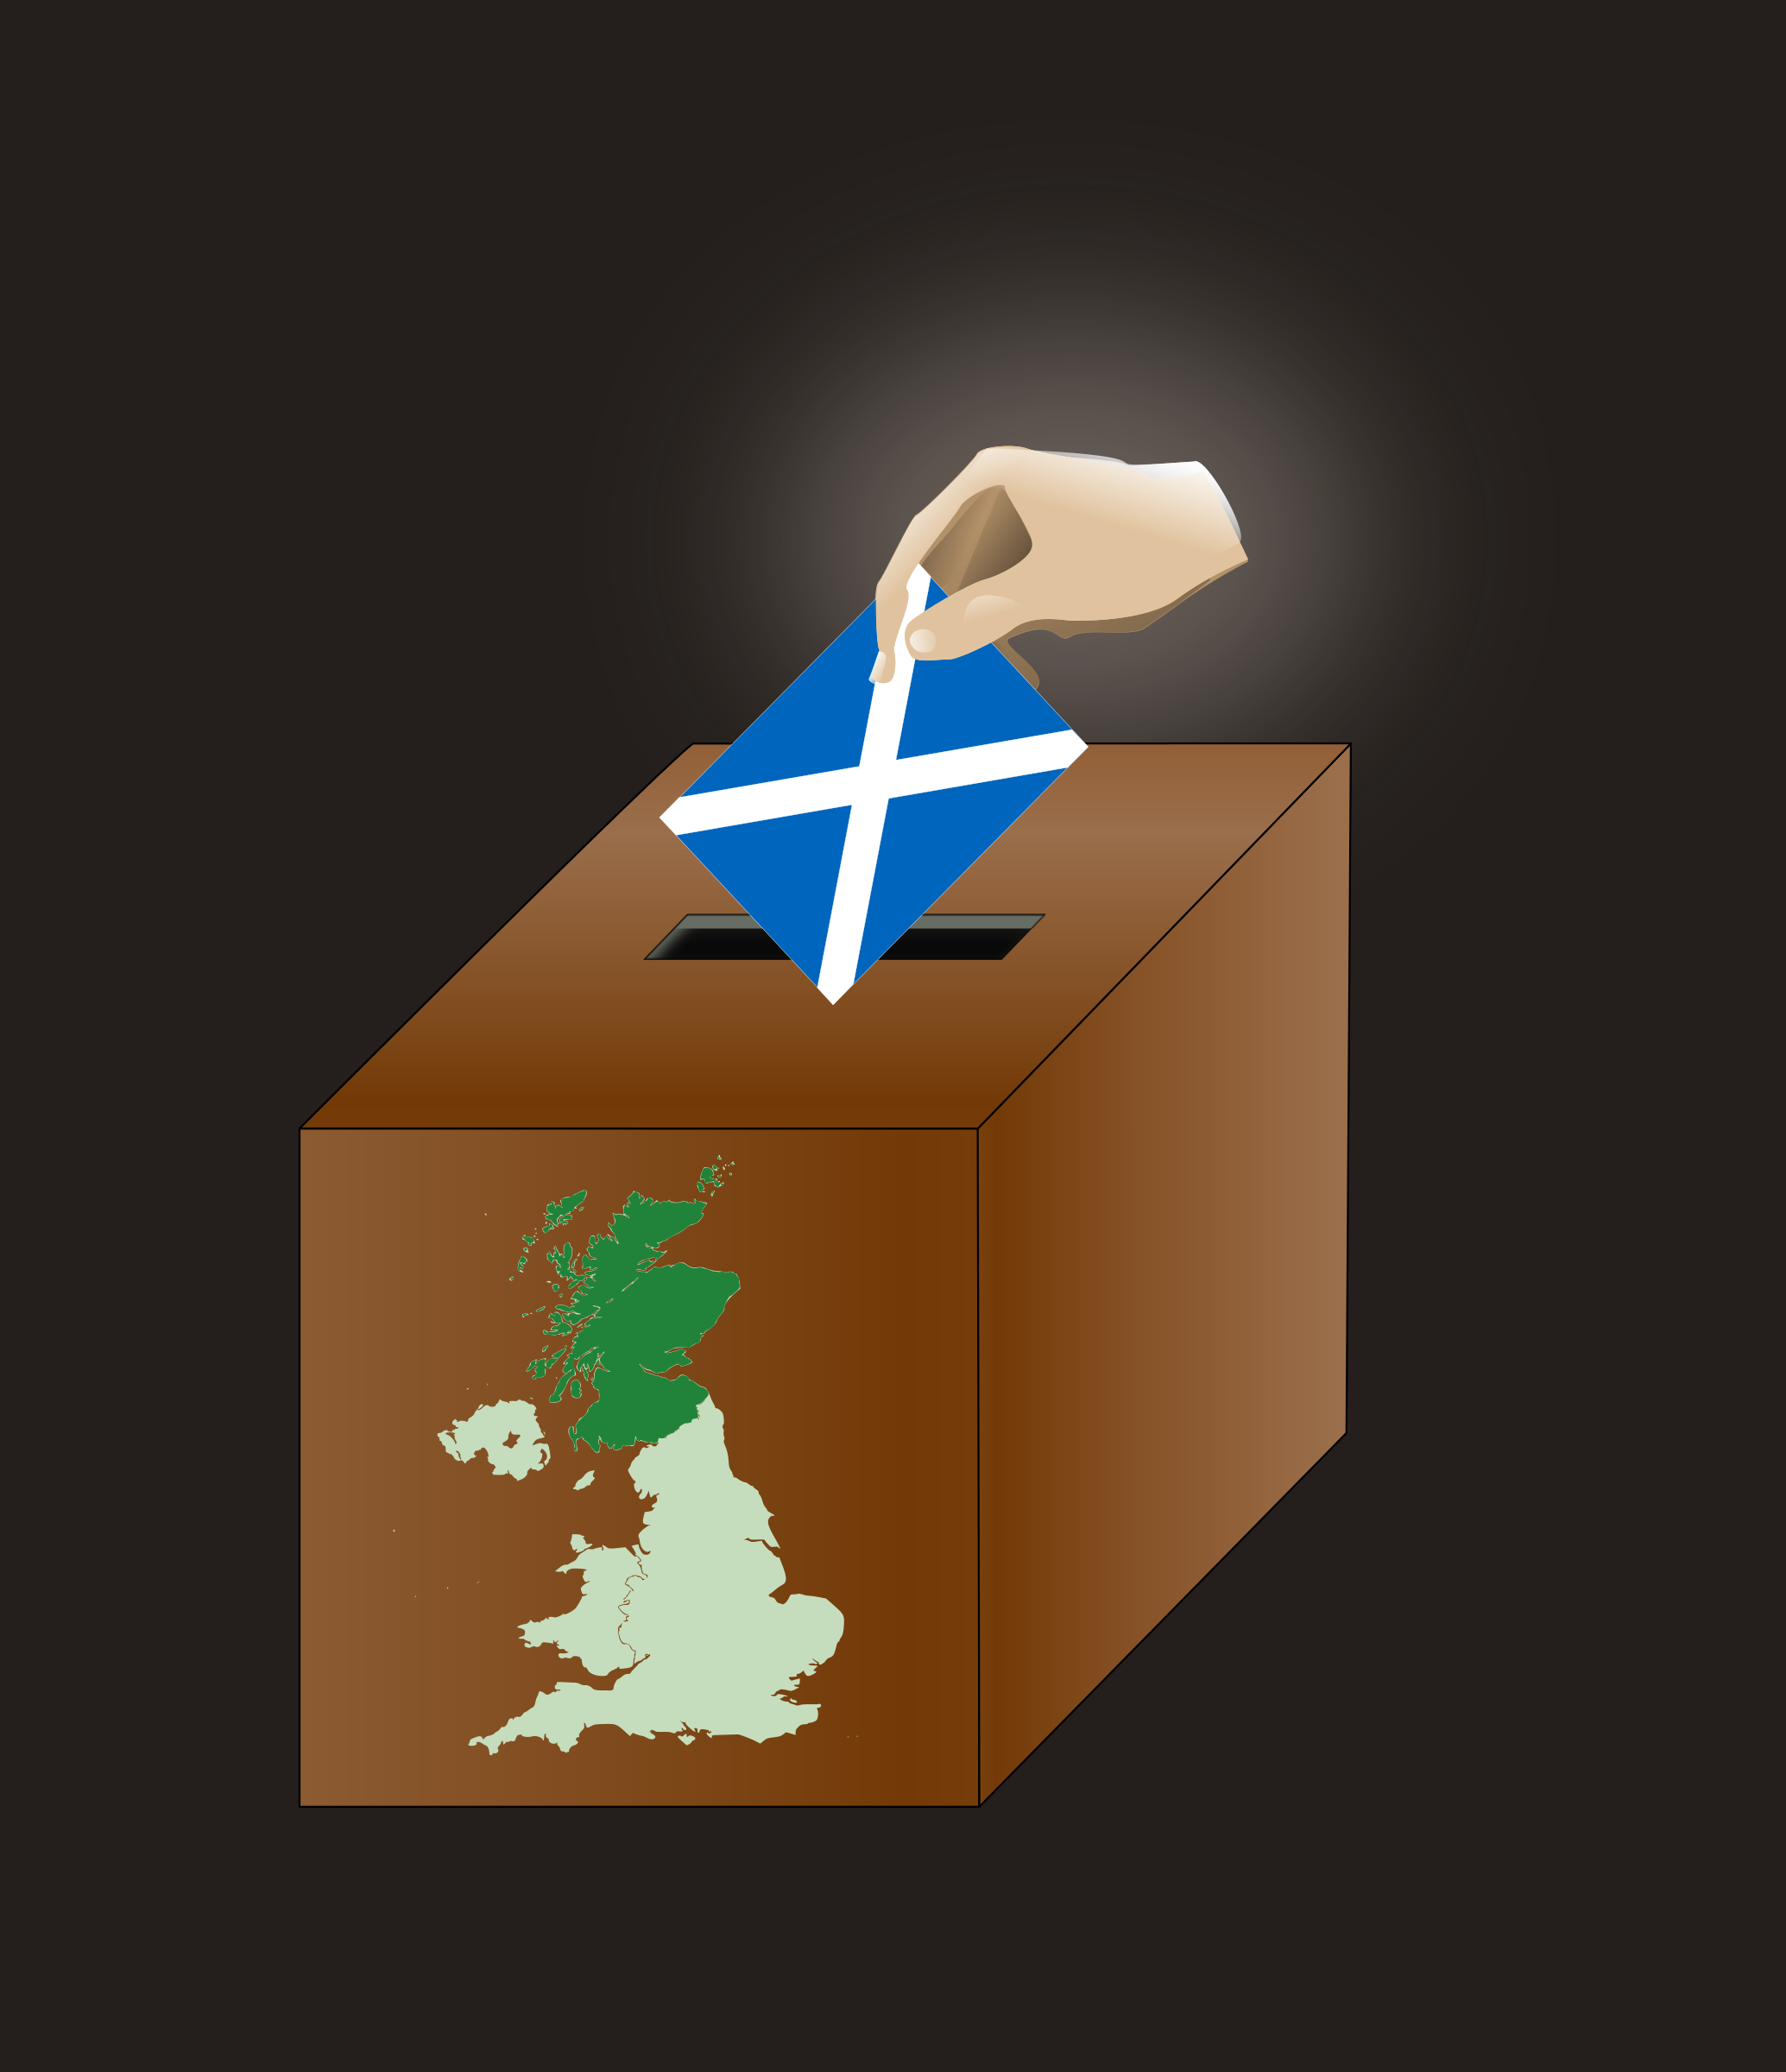 Scotland - Referendum on Independence by j4p4n